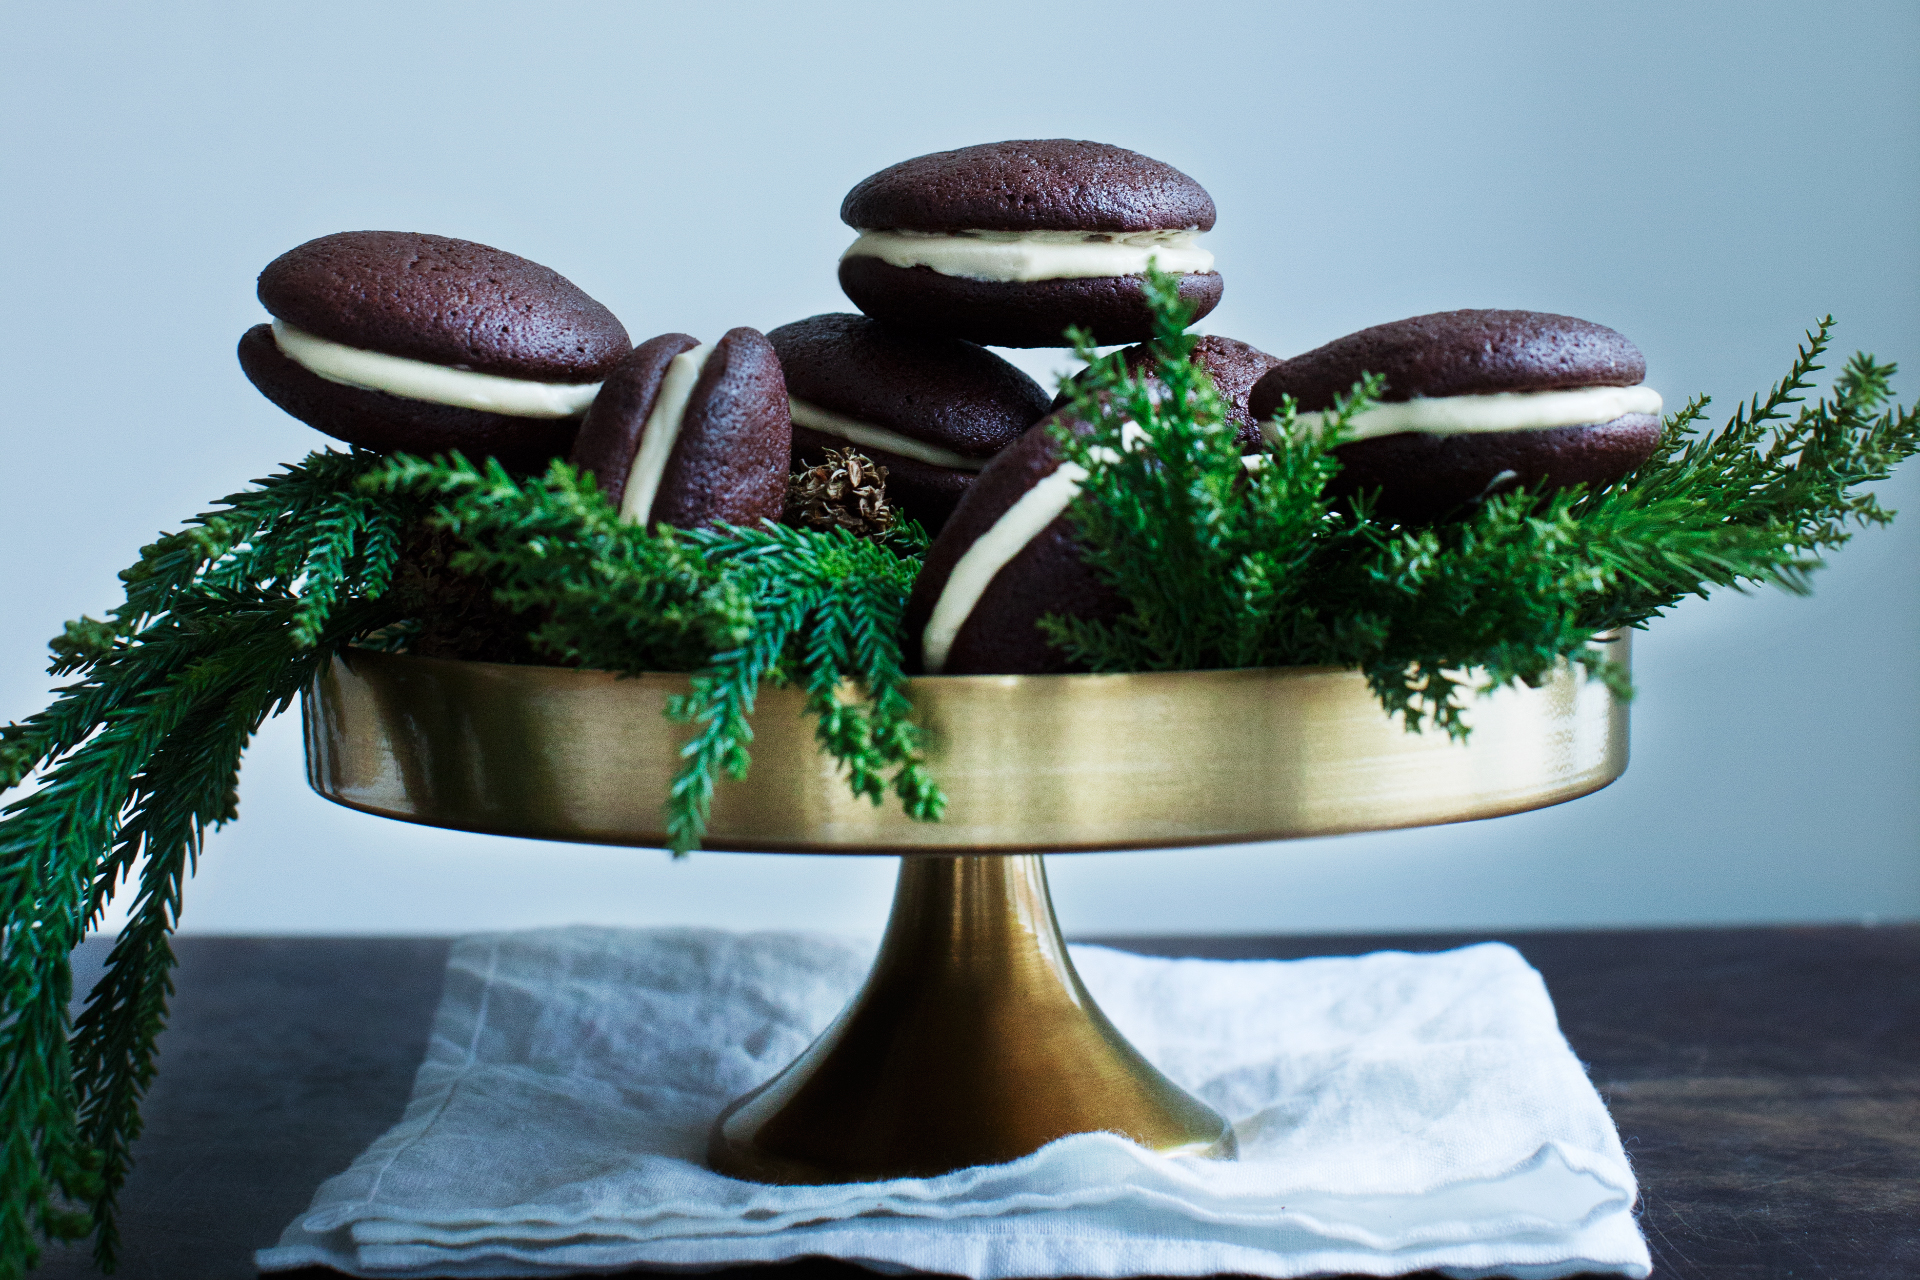 Recipe: Chocolate Whoopie Pies